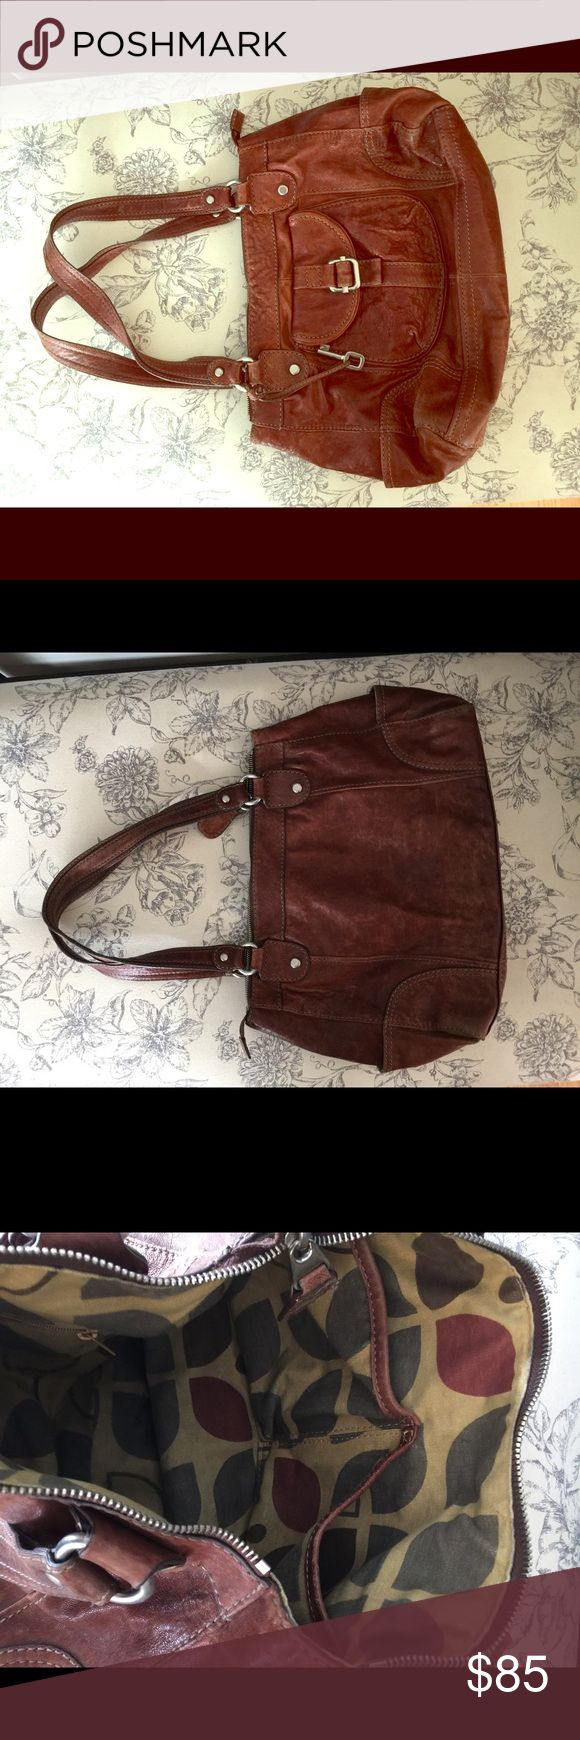 🌹FOSSIL BAG🌹 Distressed brown leather Fossil Bag - gorgeous! Fossil Bags Shoulder Bags